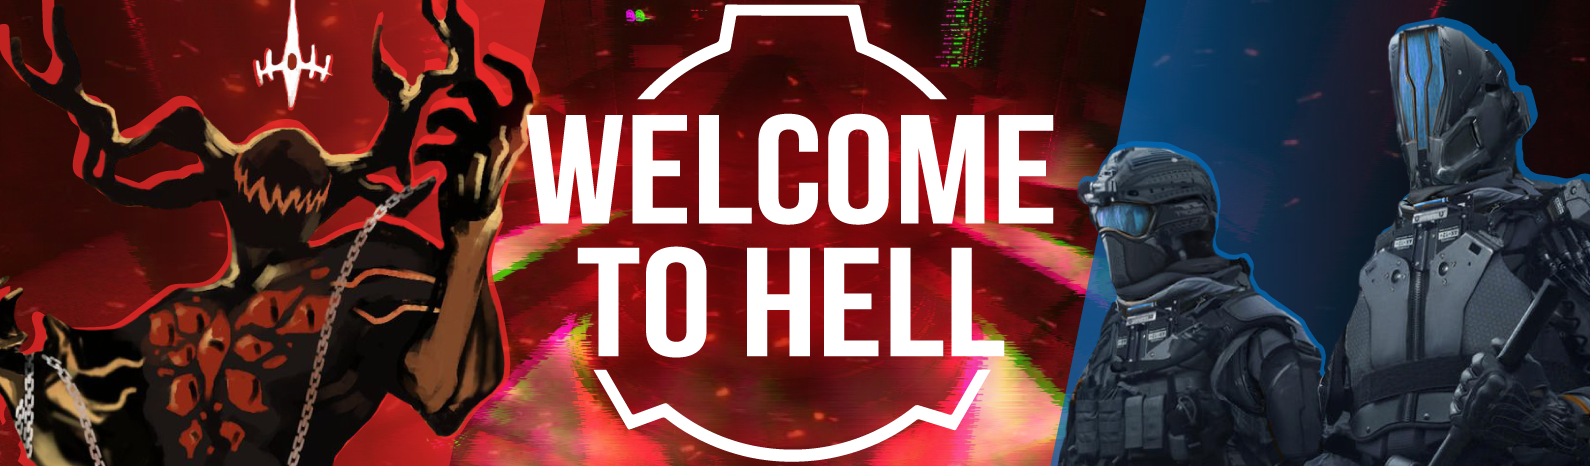 welcome_to_hell_scp_banner.png